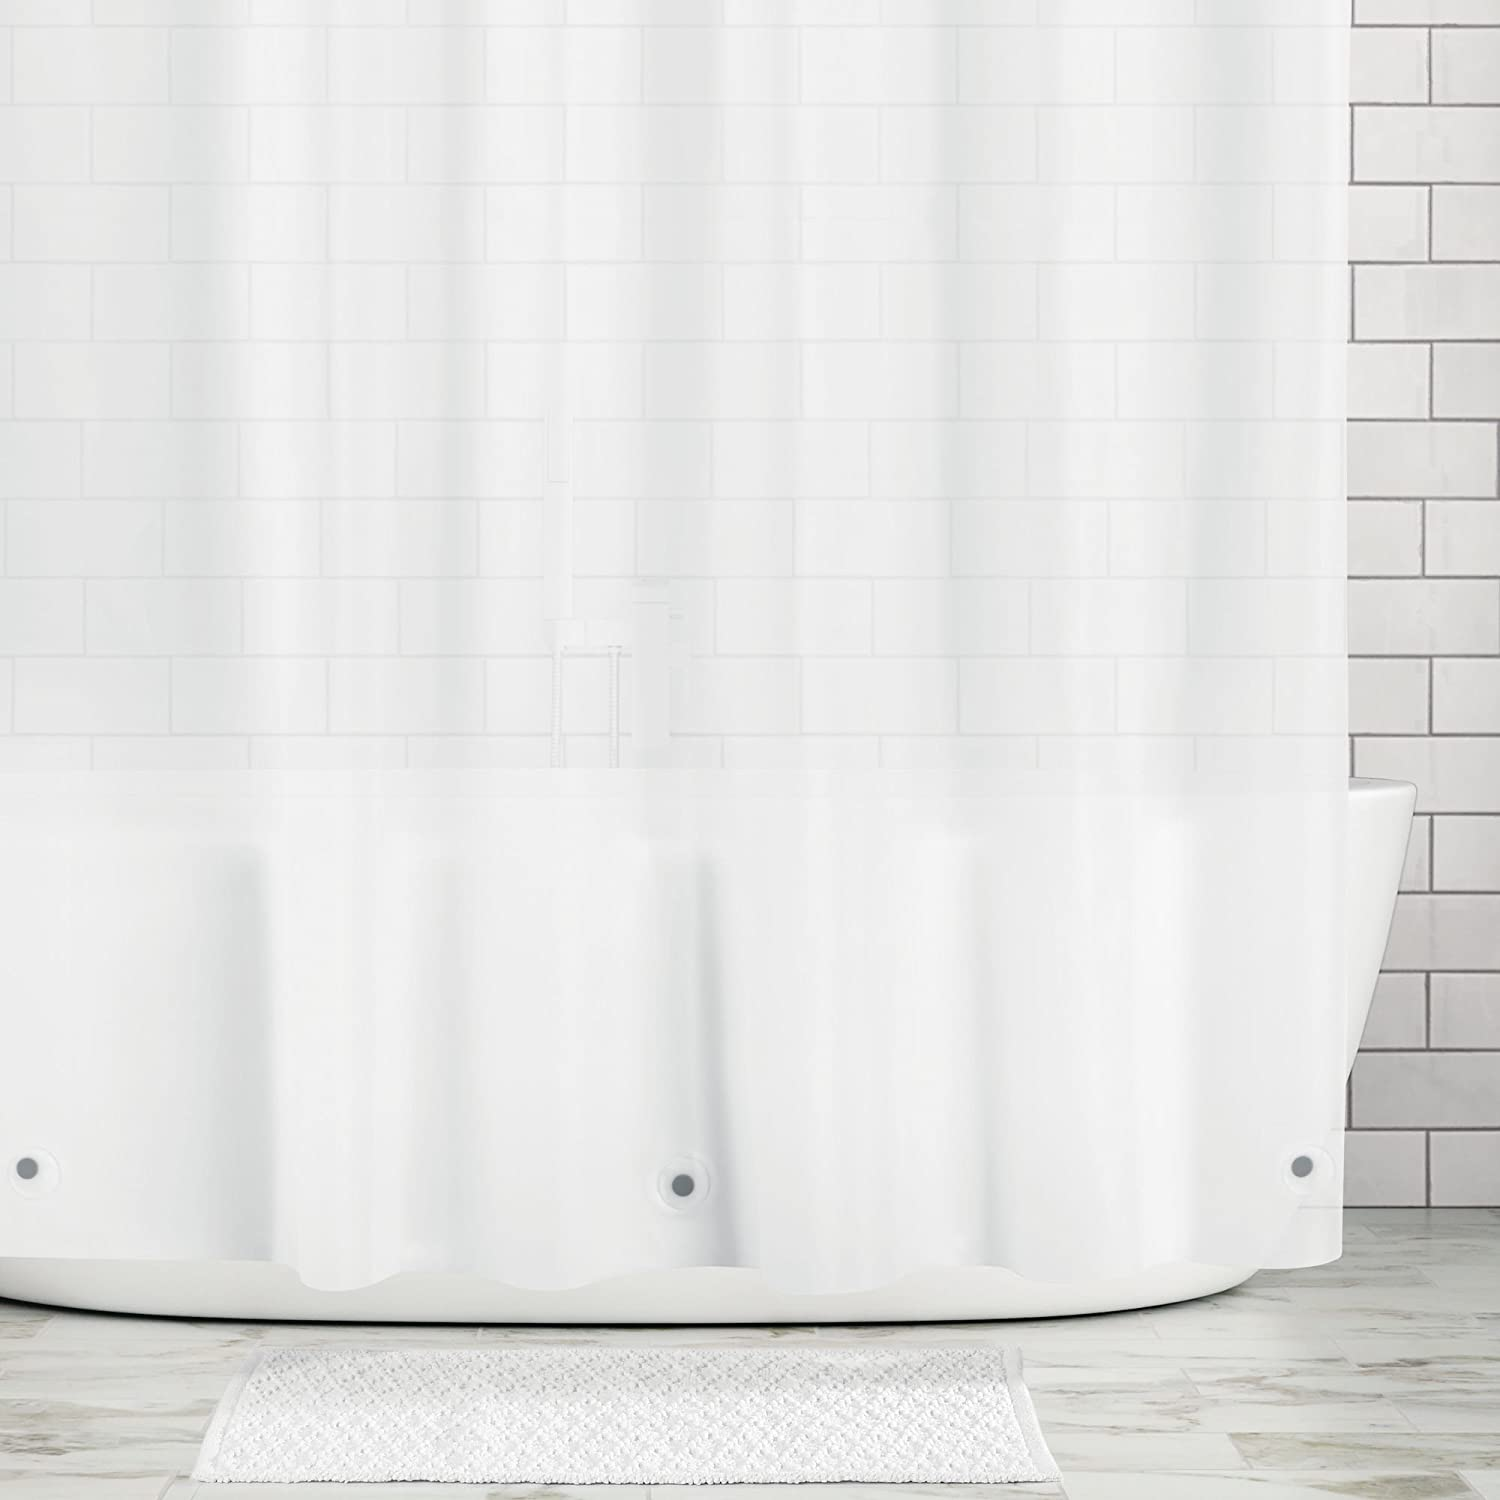 mDesign Long Waterproof, Mold/Mildew Resistant, Heavy Duty Premium Quality 4.8-Guage Vinyl Shower Curtain Liner for Bathroom Shower Stall and Bathtub - 72